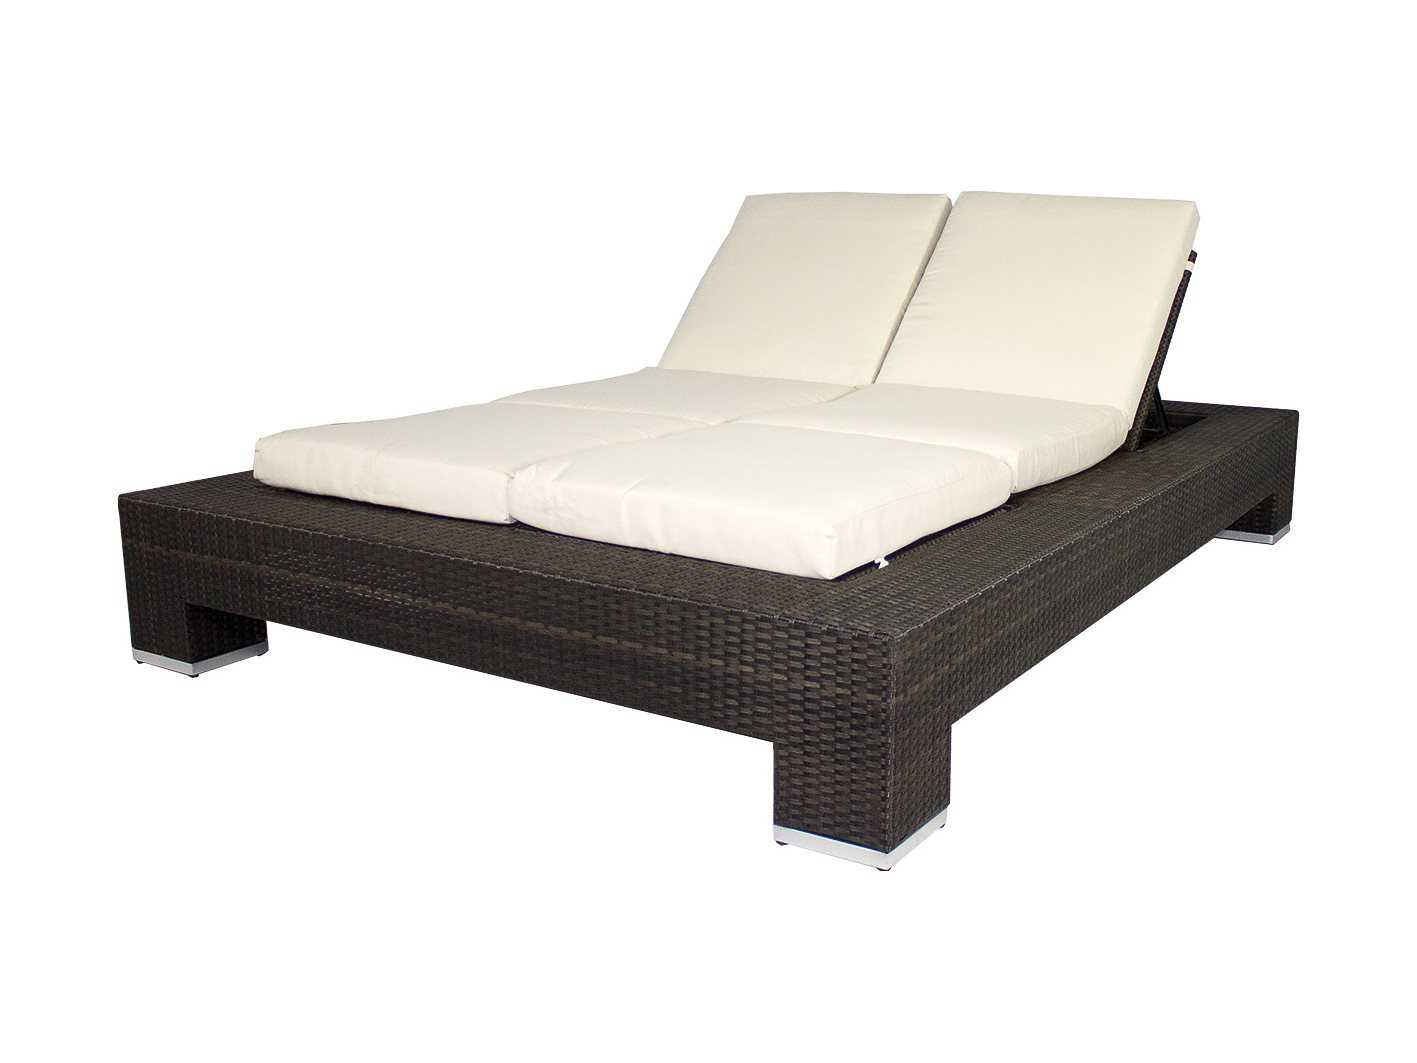 Source outdoor furniture king double chaise lounge for Chaise longue double a bascule